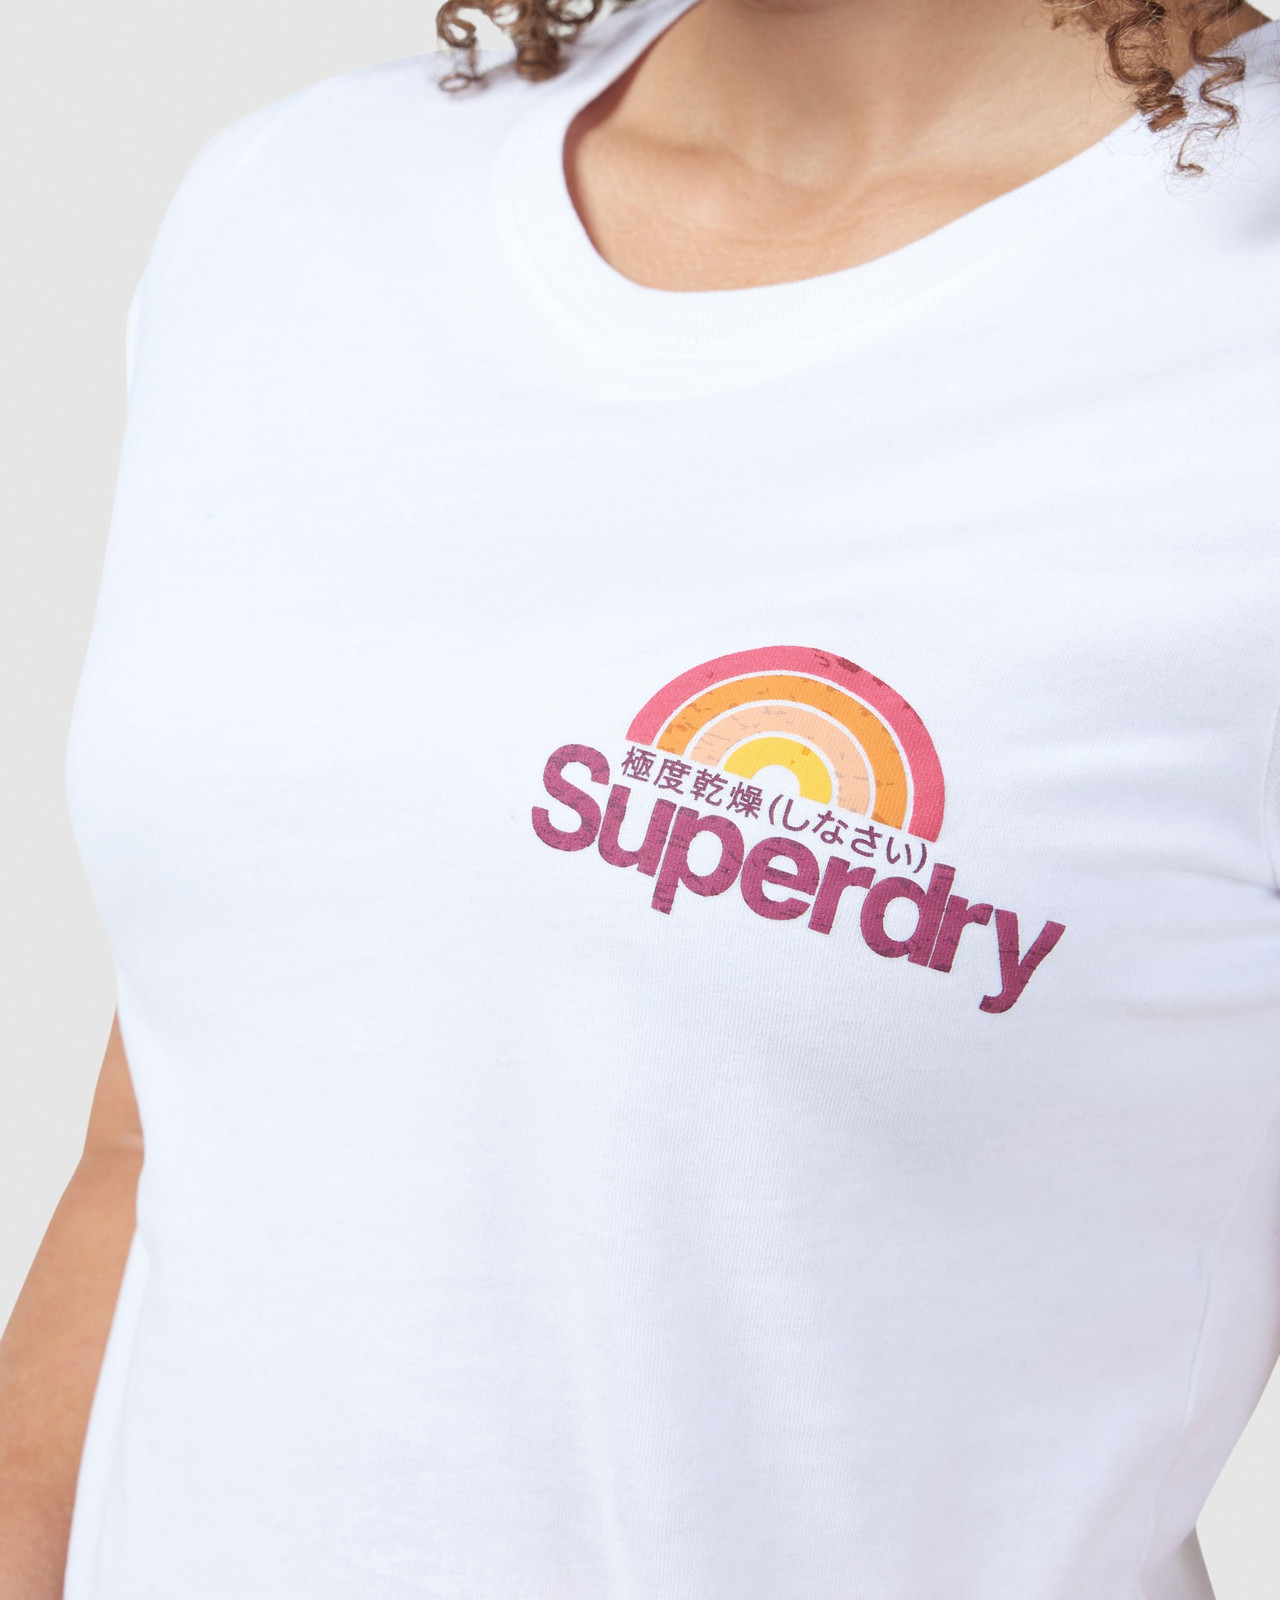 Superdry Womens CL WILDERNESS TEE White Printed T Shirts 6